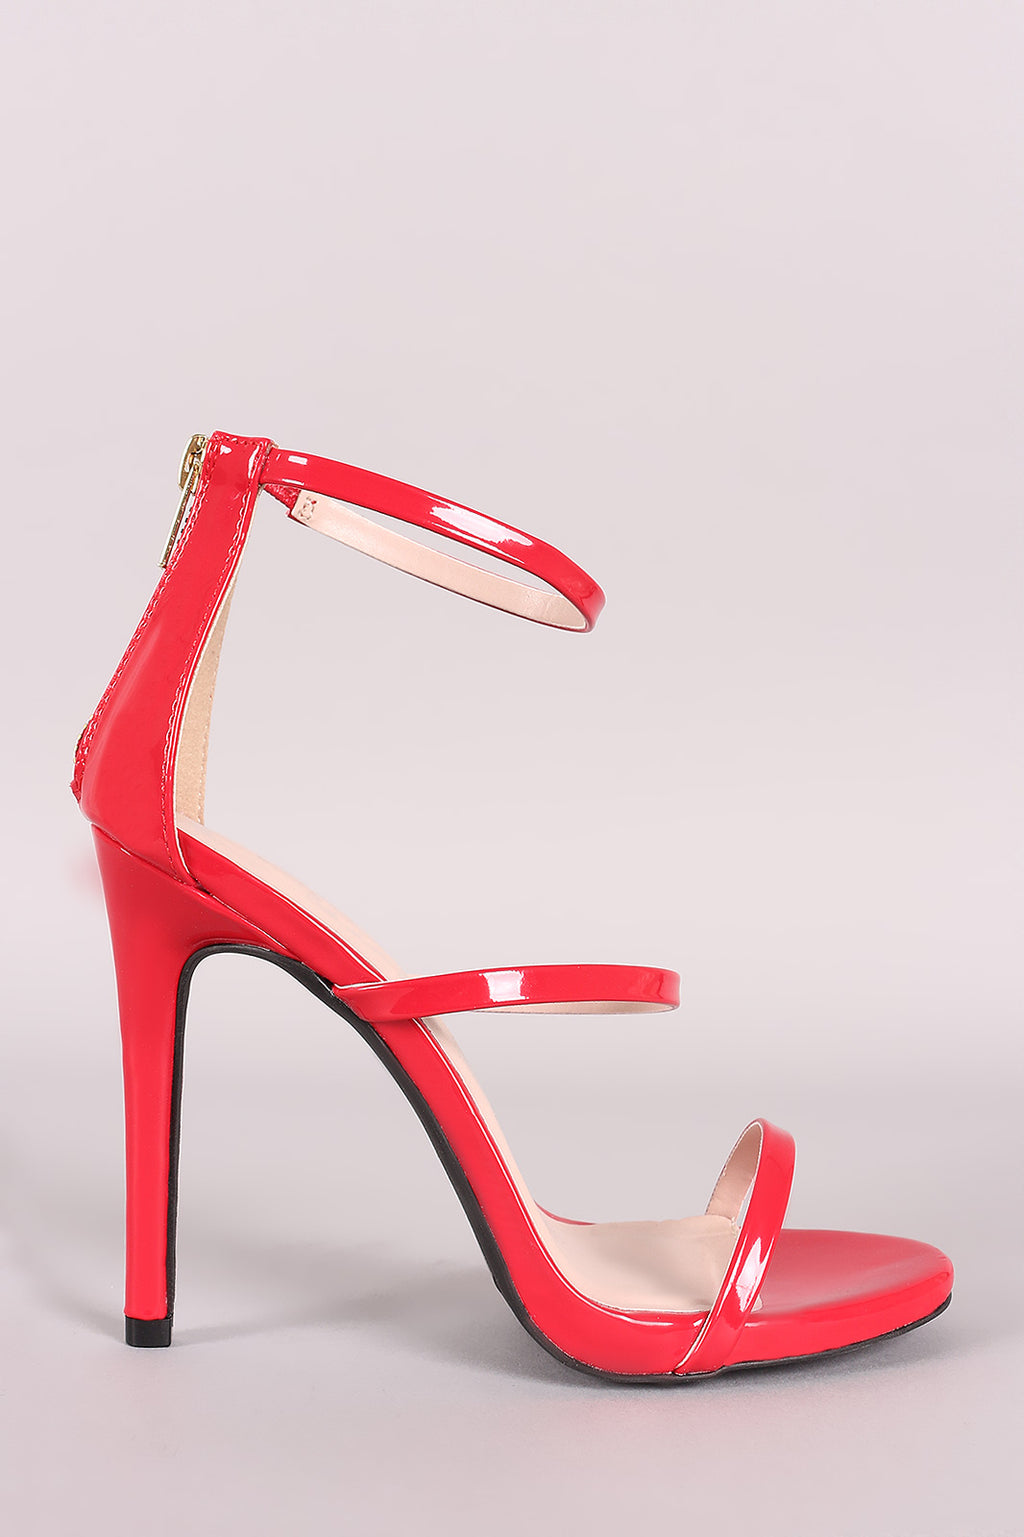 Contessa Patent Triple Strap Single Sole Heel